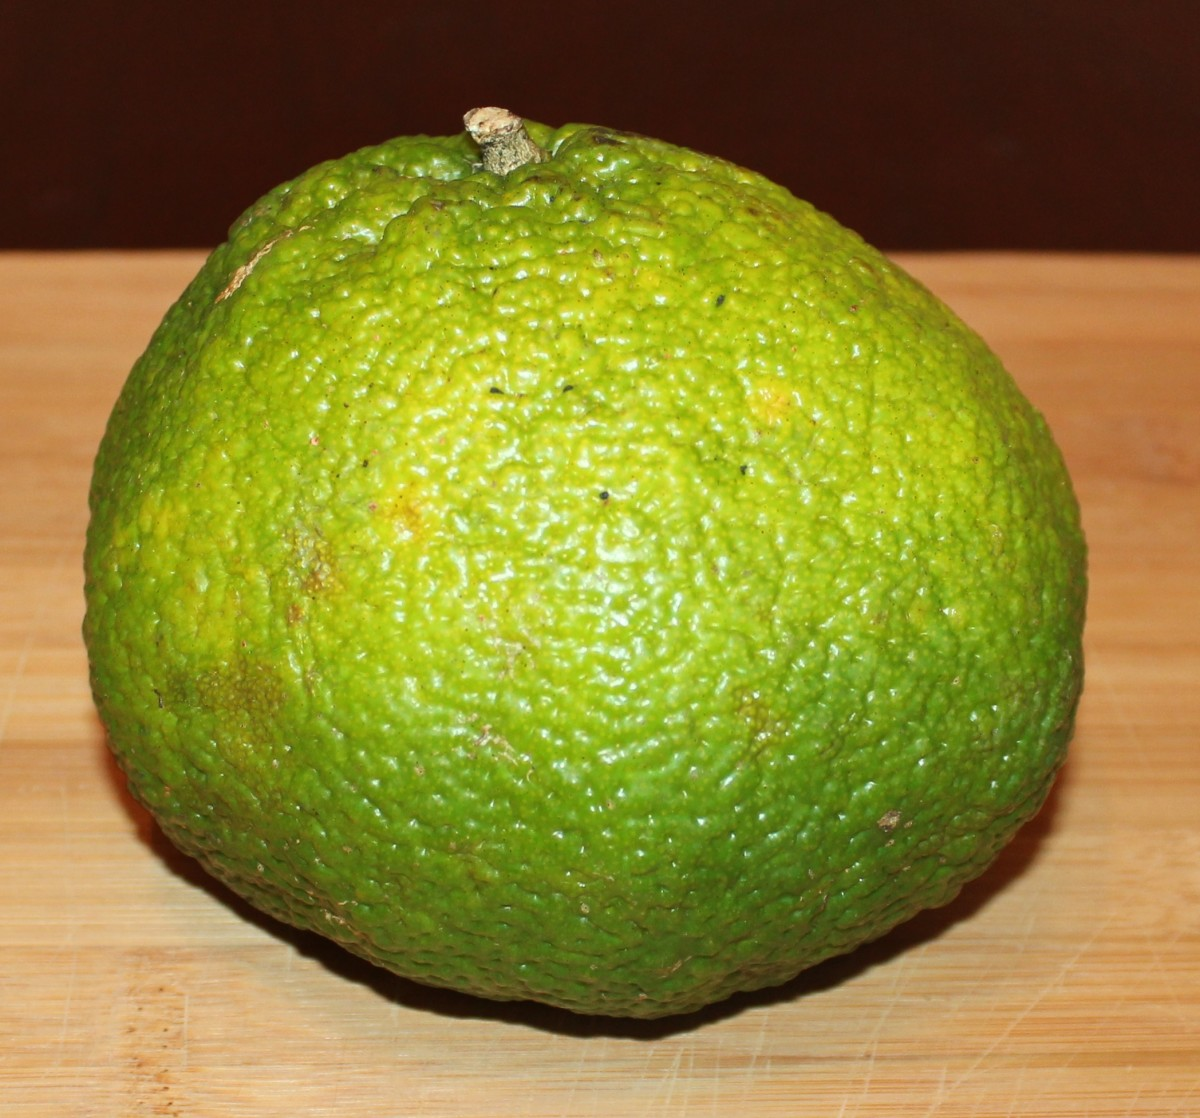 don't be fooled by the puckered, bumpy skin of tangelo fruit. inside they are extremely juicy and sweet.